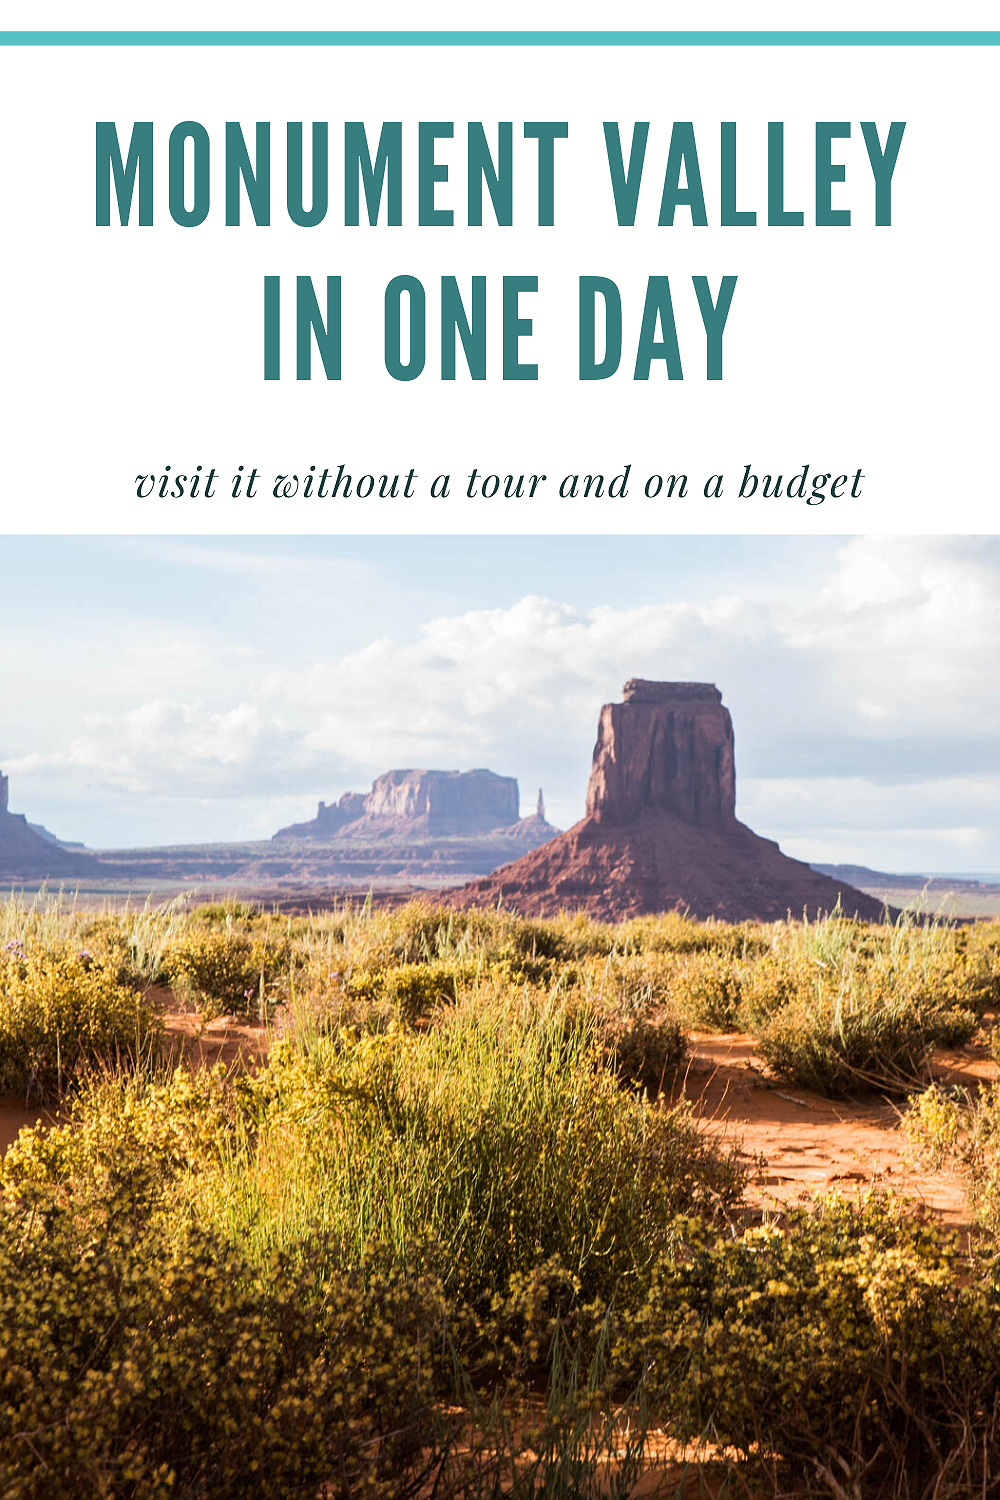 monument valley in one day